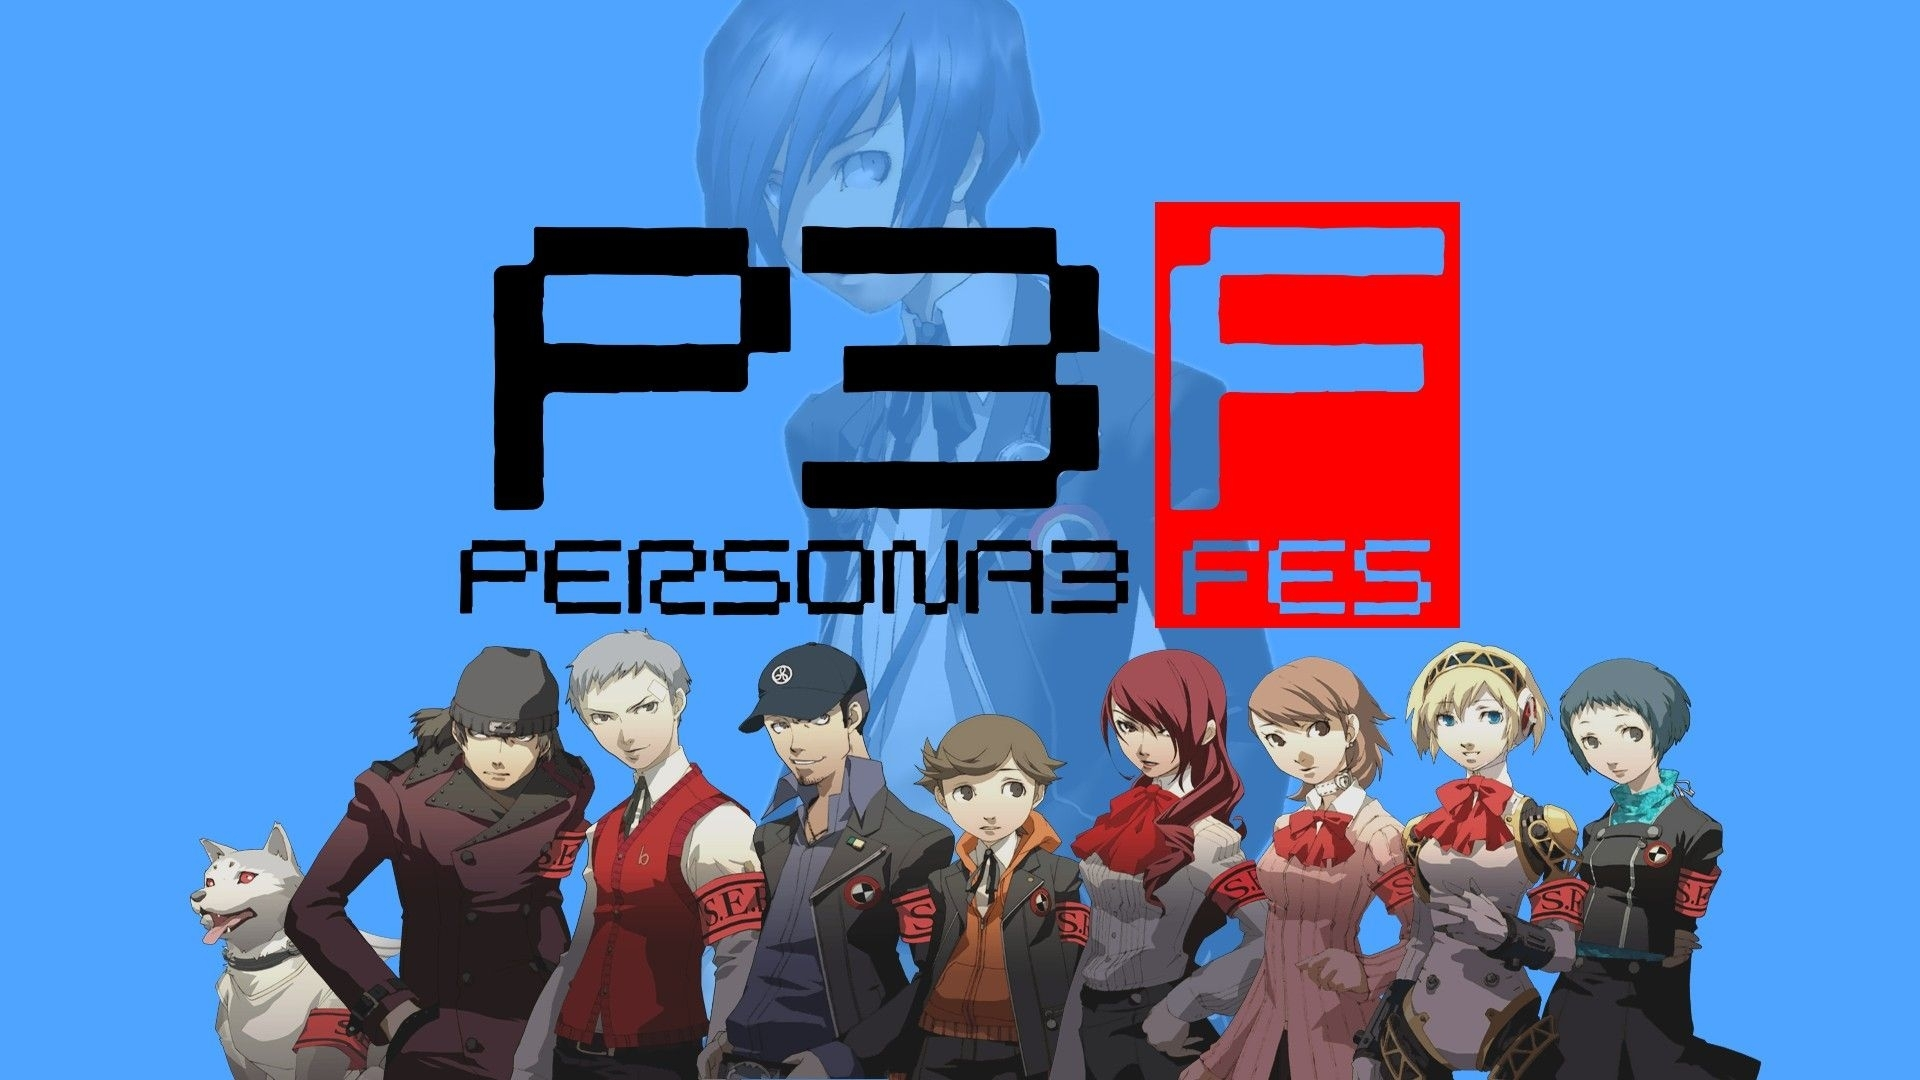 10 New Persona 3 Fes Wallpaper FULL HD 1920×1080 For PC Desktop